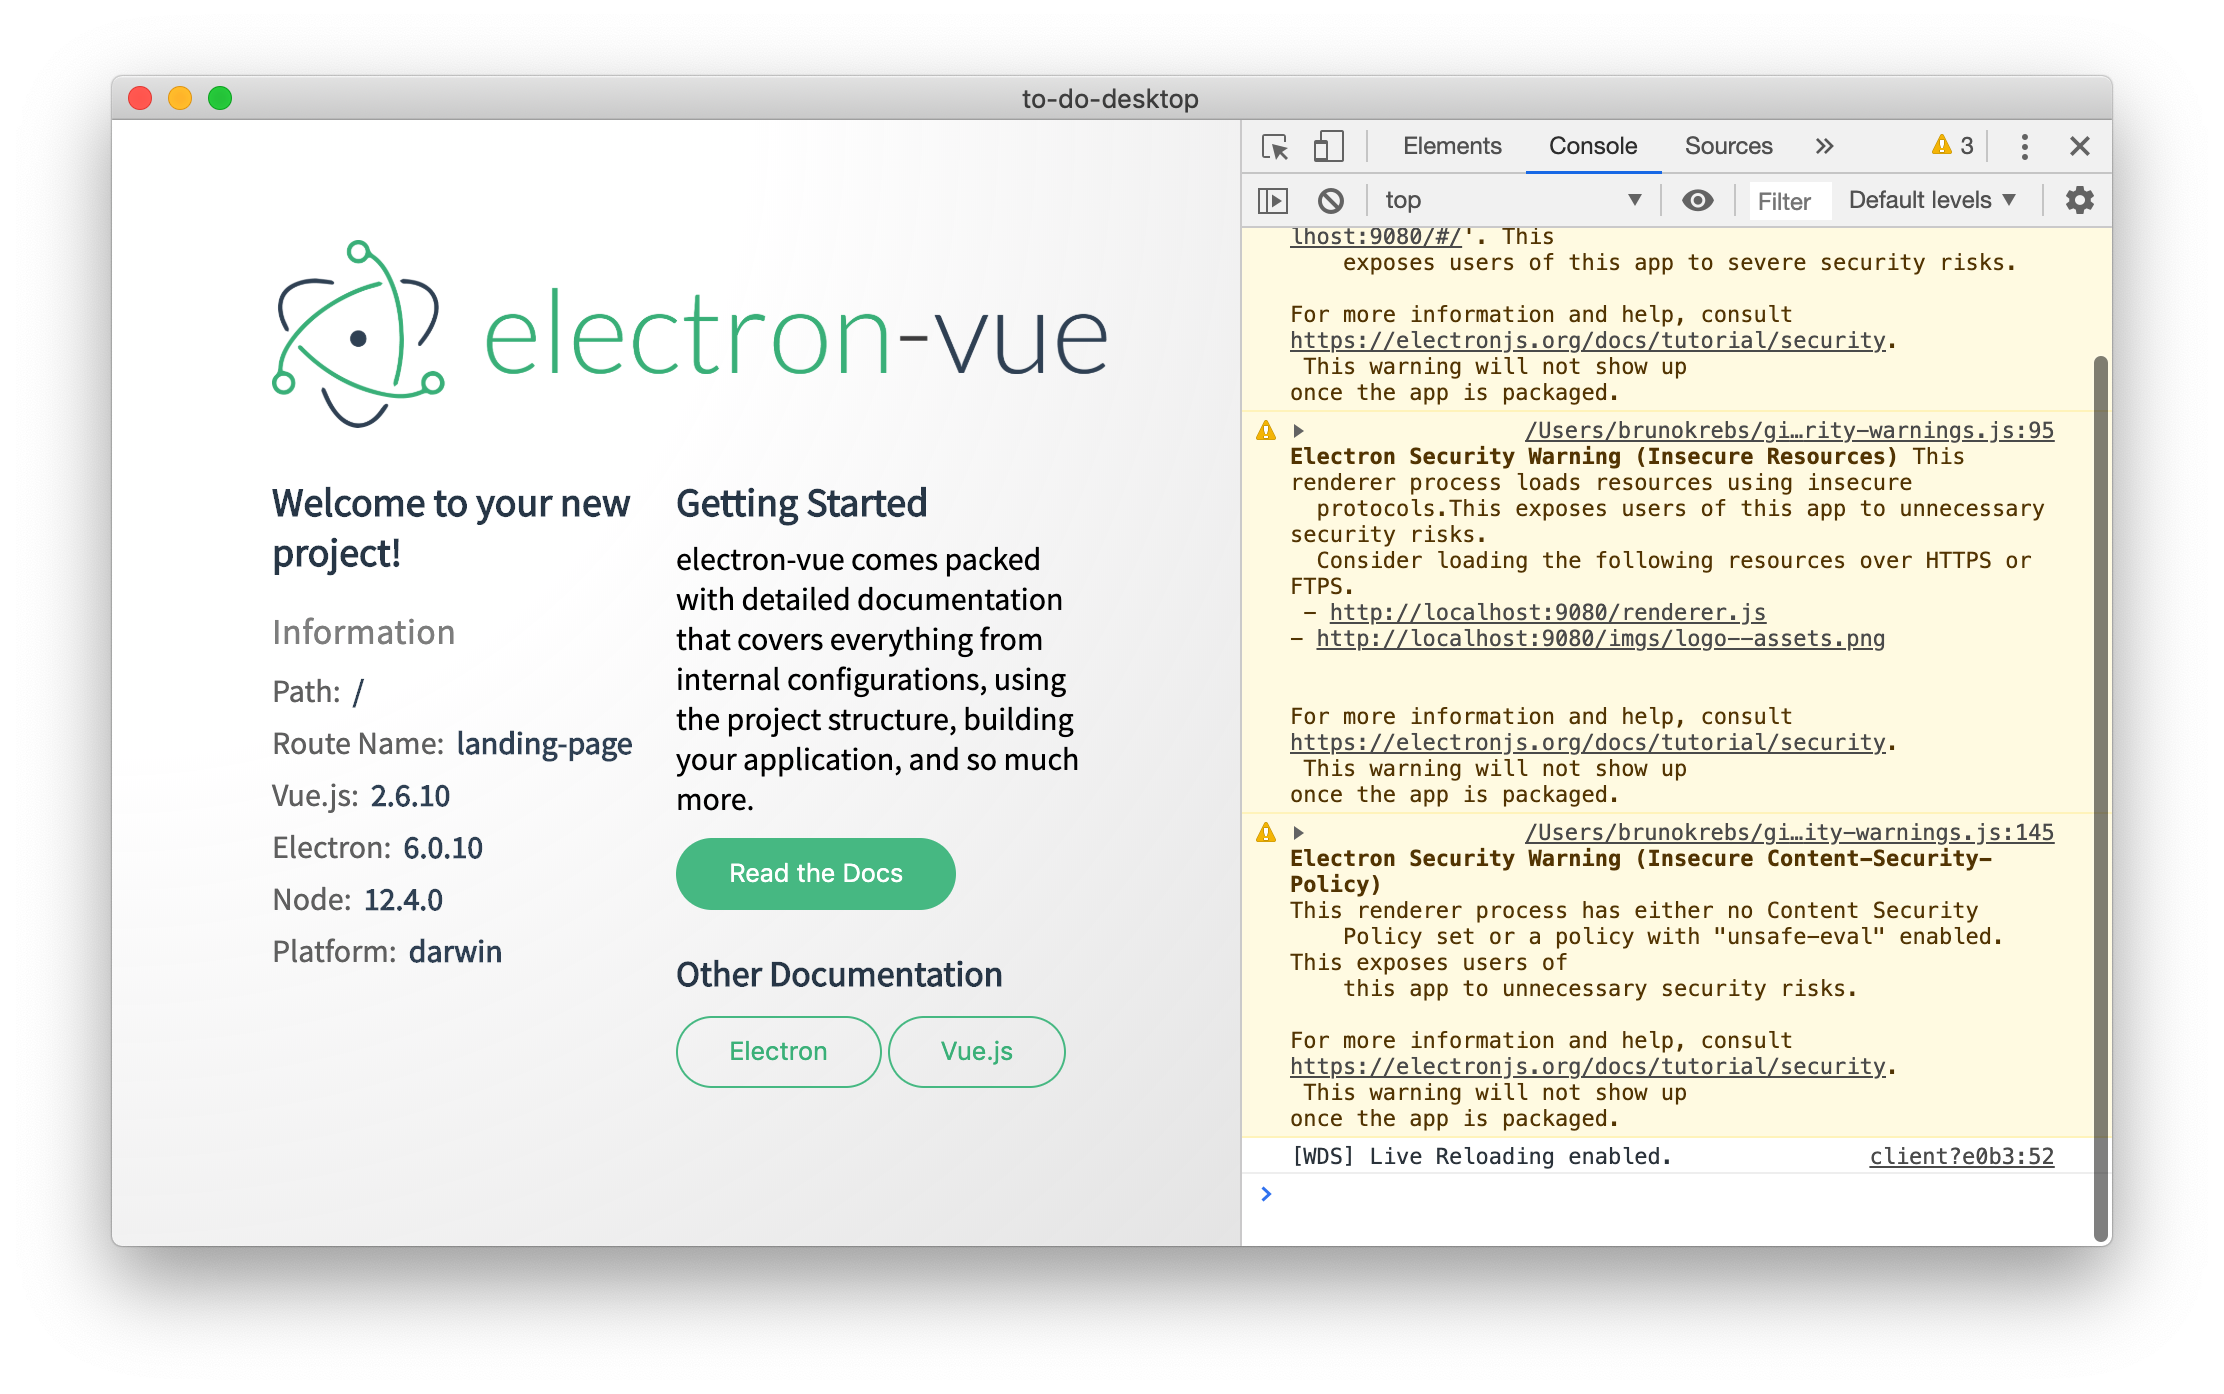 Electron and Vue.js getting started page.